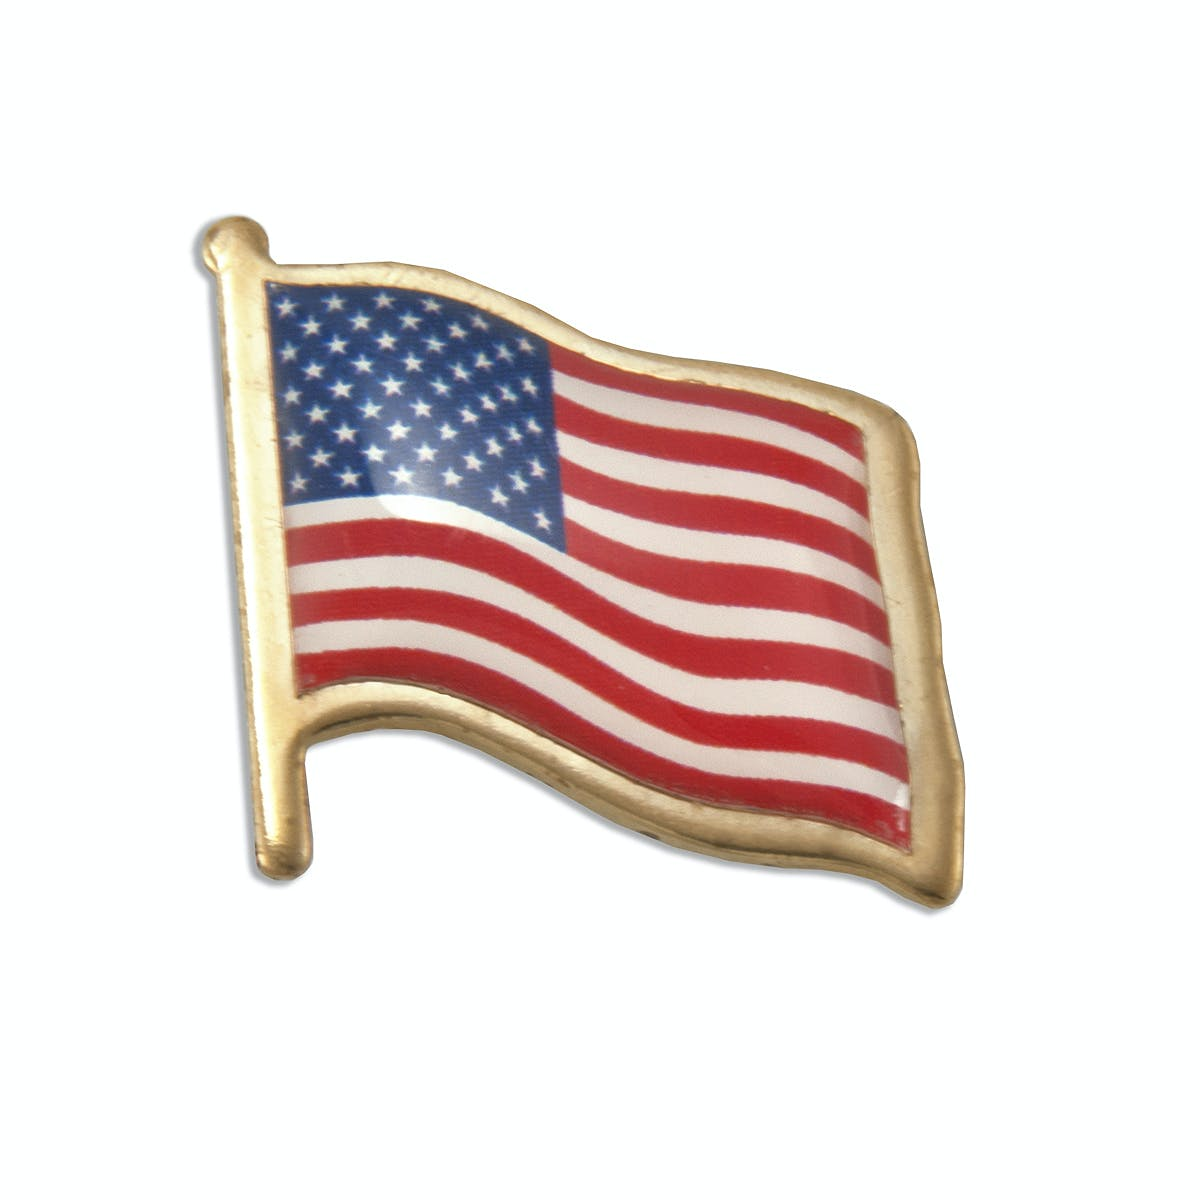 American Flag Lapel Pin (Item # VJMMM-HNUAB) Lapel pin sold by InkEasy